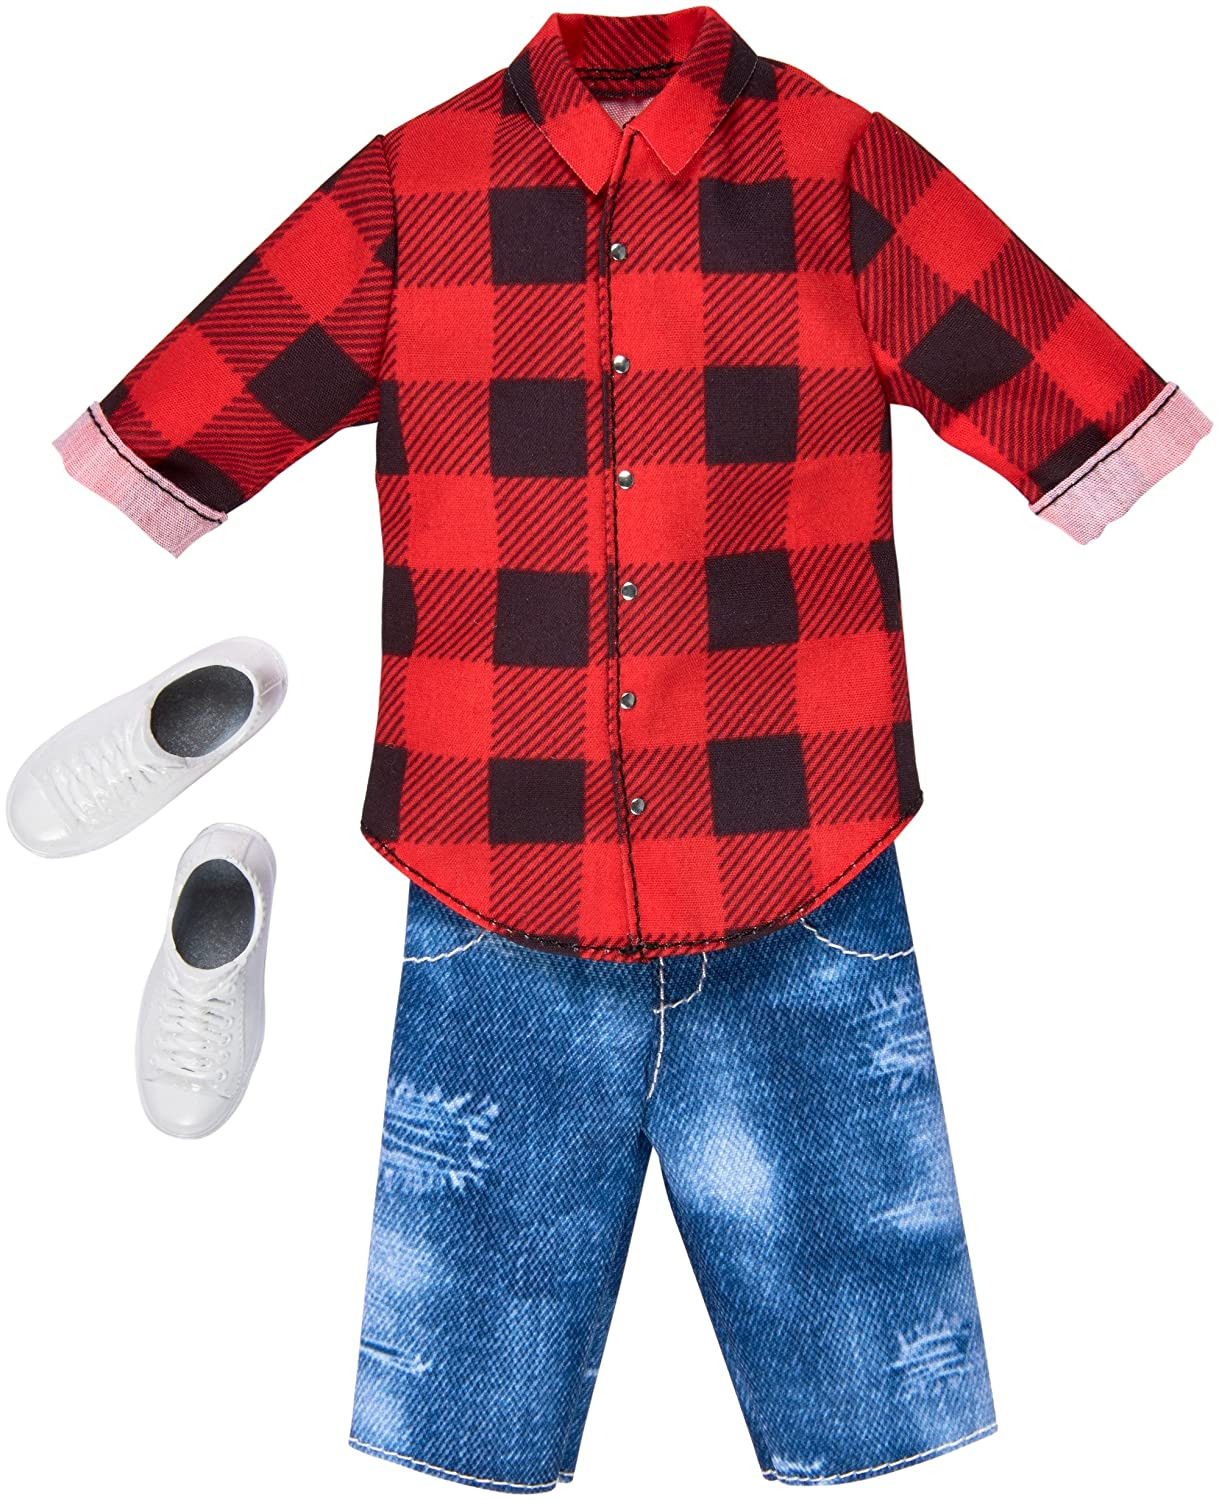 Barbie Ken Fashions Pack - Red Buffalo Plaid Shirt and Denim Shorts Fisher Price / Mattel Canada FKT47